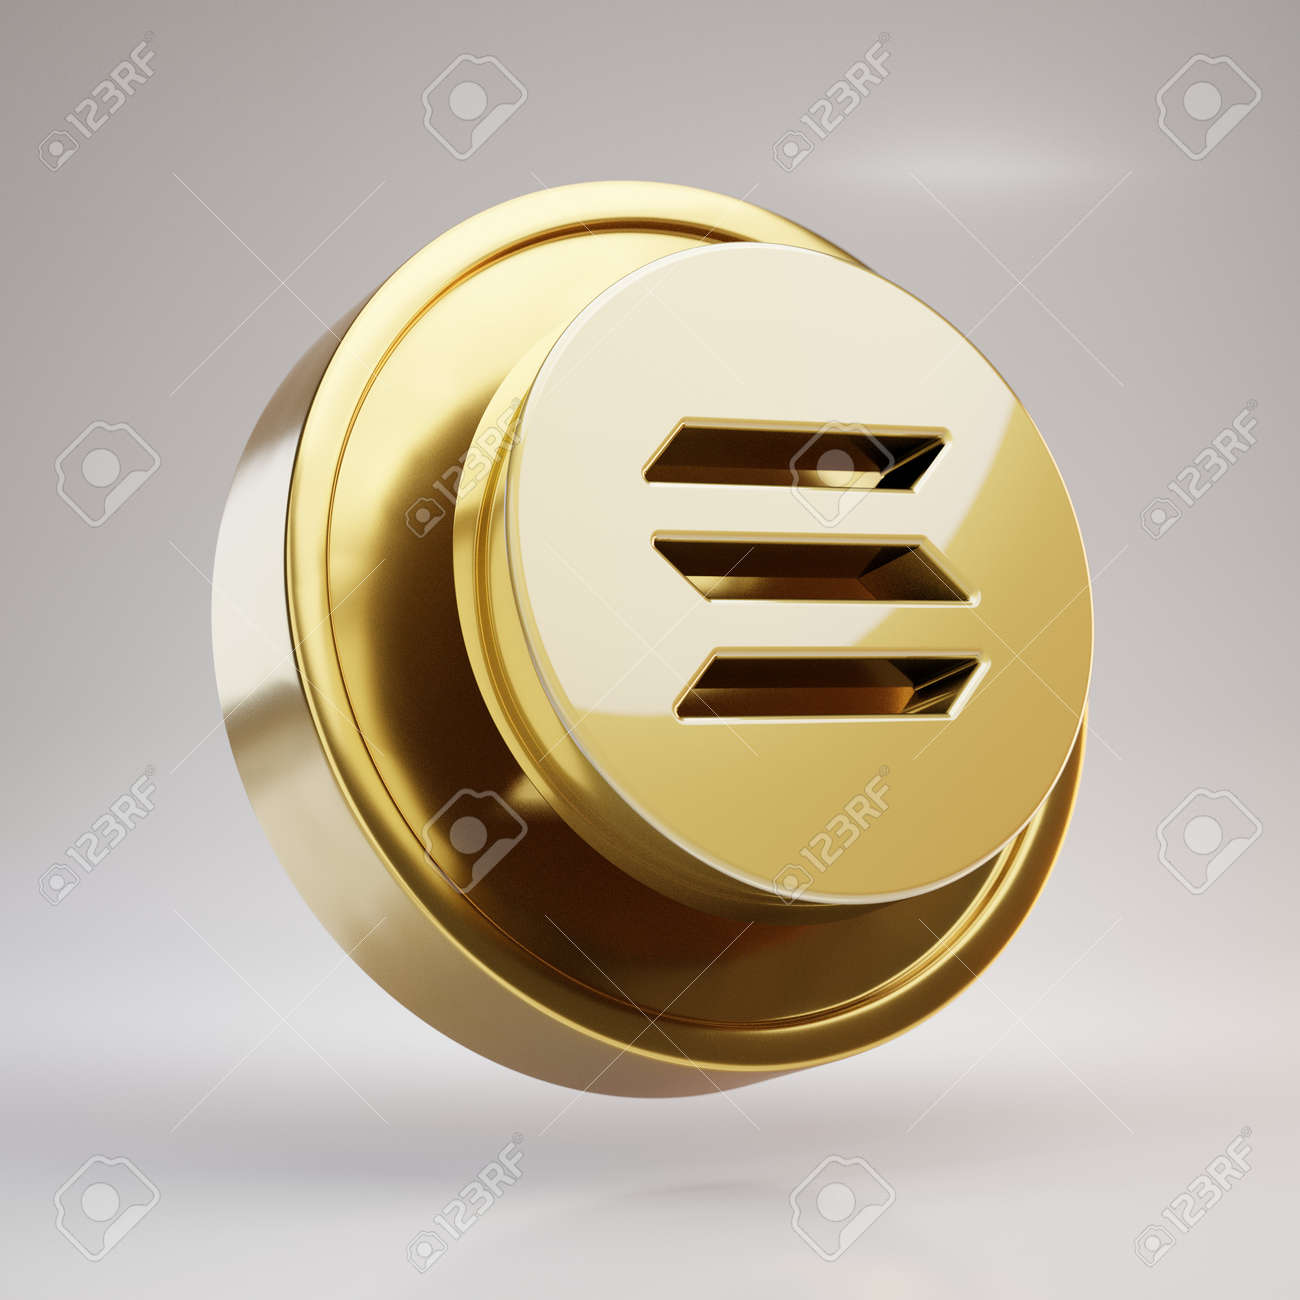 Solana Cryptocurrency Coin. Gold 3d Rendered Coin With Solana.. Stock  Photo, Picture And Royalty Free Image. Image 163394092.